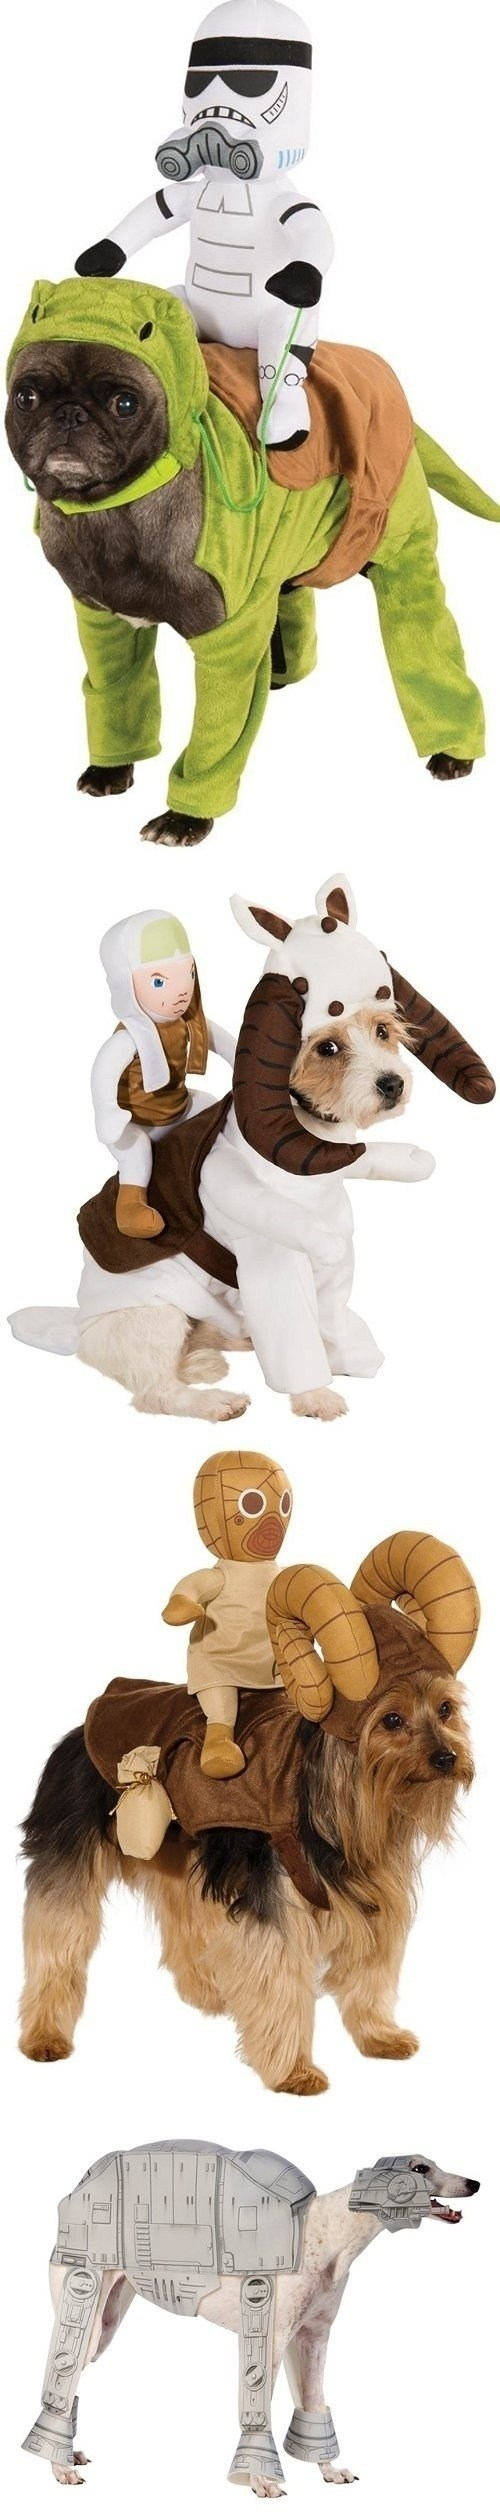 These Are Not the Dogs You're Looking For